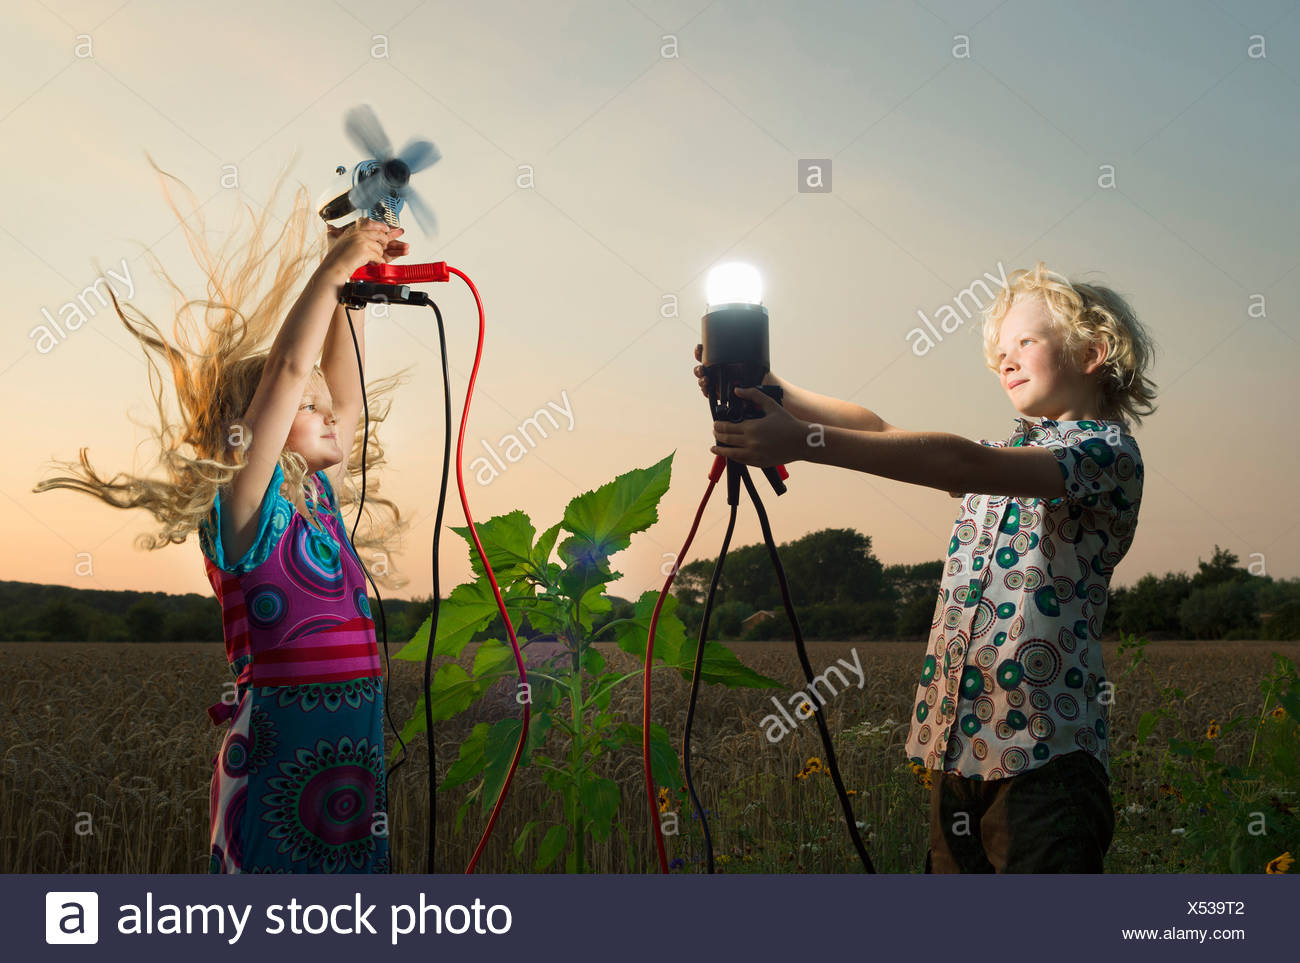 Brother and sister generating light from wind power, Zeeland, Netherlands - Stock Image